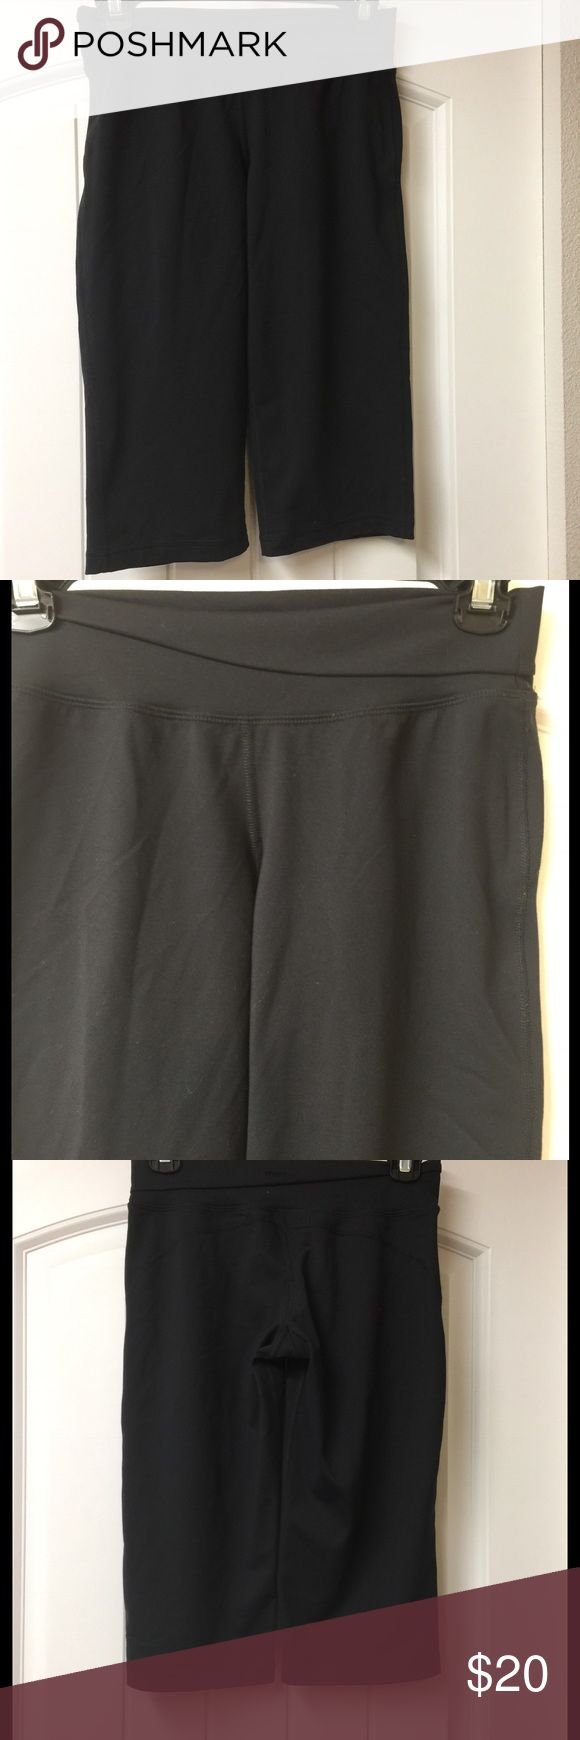 """Patagonia Pliant Knickers Long Shorts Black Yoga S Patagonia Black Pliant Knickers Long Shorts Yoga Size small.  Excellent pre owned condition.  Tagged S but please see measurements to ensure proper fit.  Measured flat unstretched.  Waist - 13"""", rise - 8"""", Inseam - 16"""".  See photos. Ask any questions before purchasing. Patagonia Pants Leggings"""